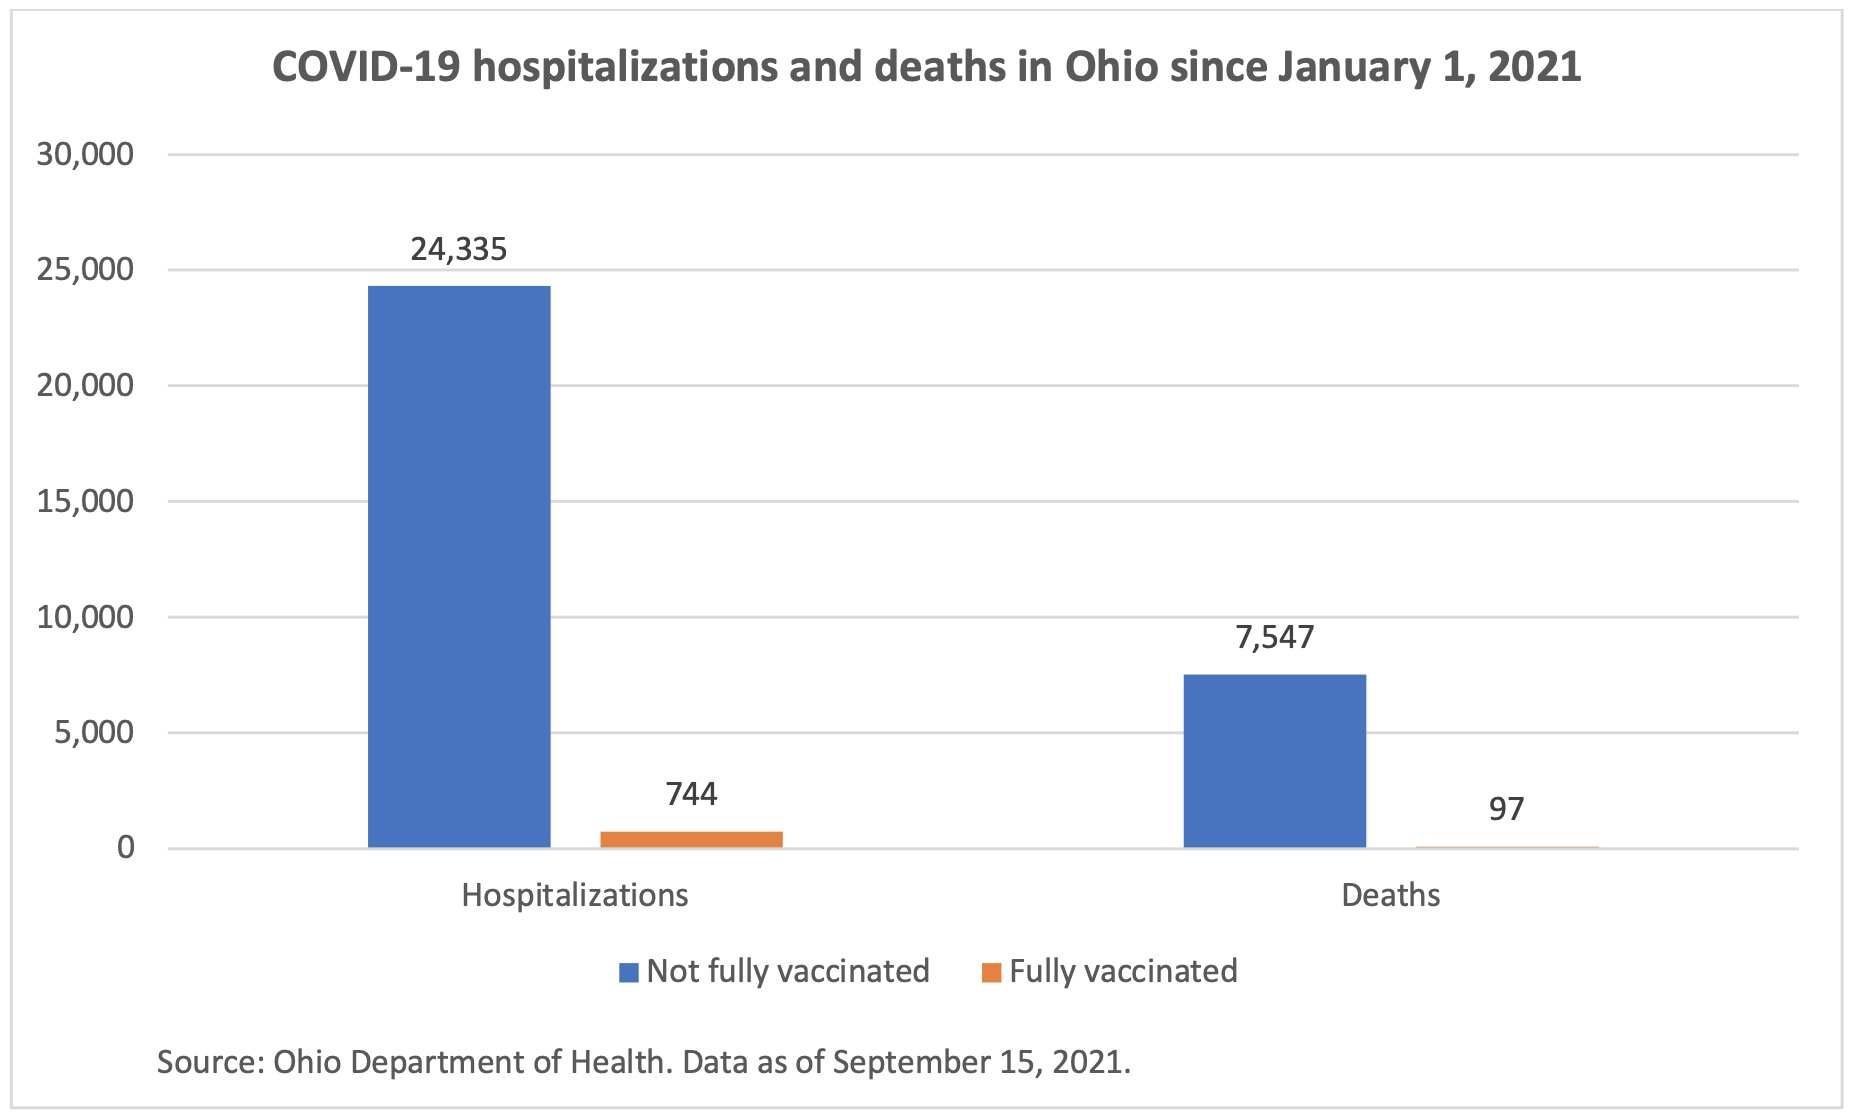 COVID-19 hospitalizations and deaths in Ohio since January 1, 2021.